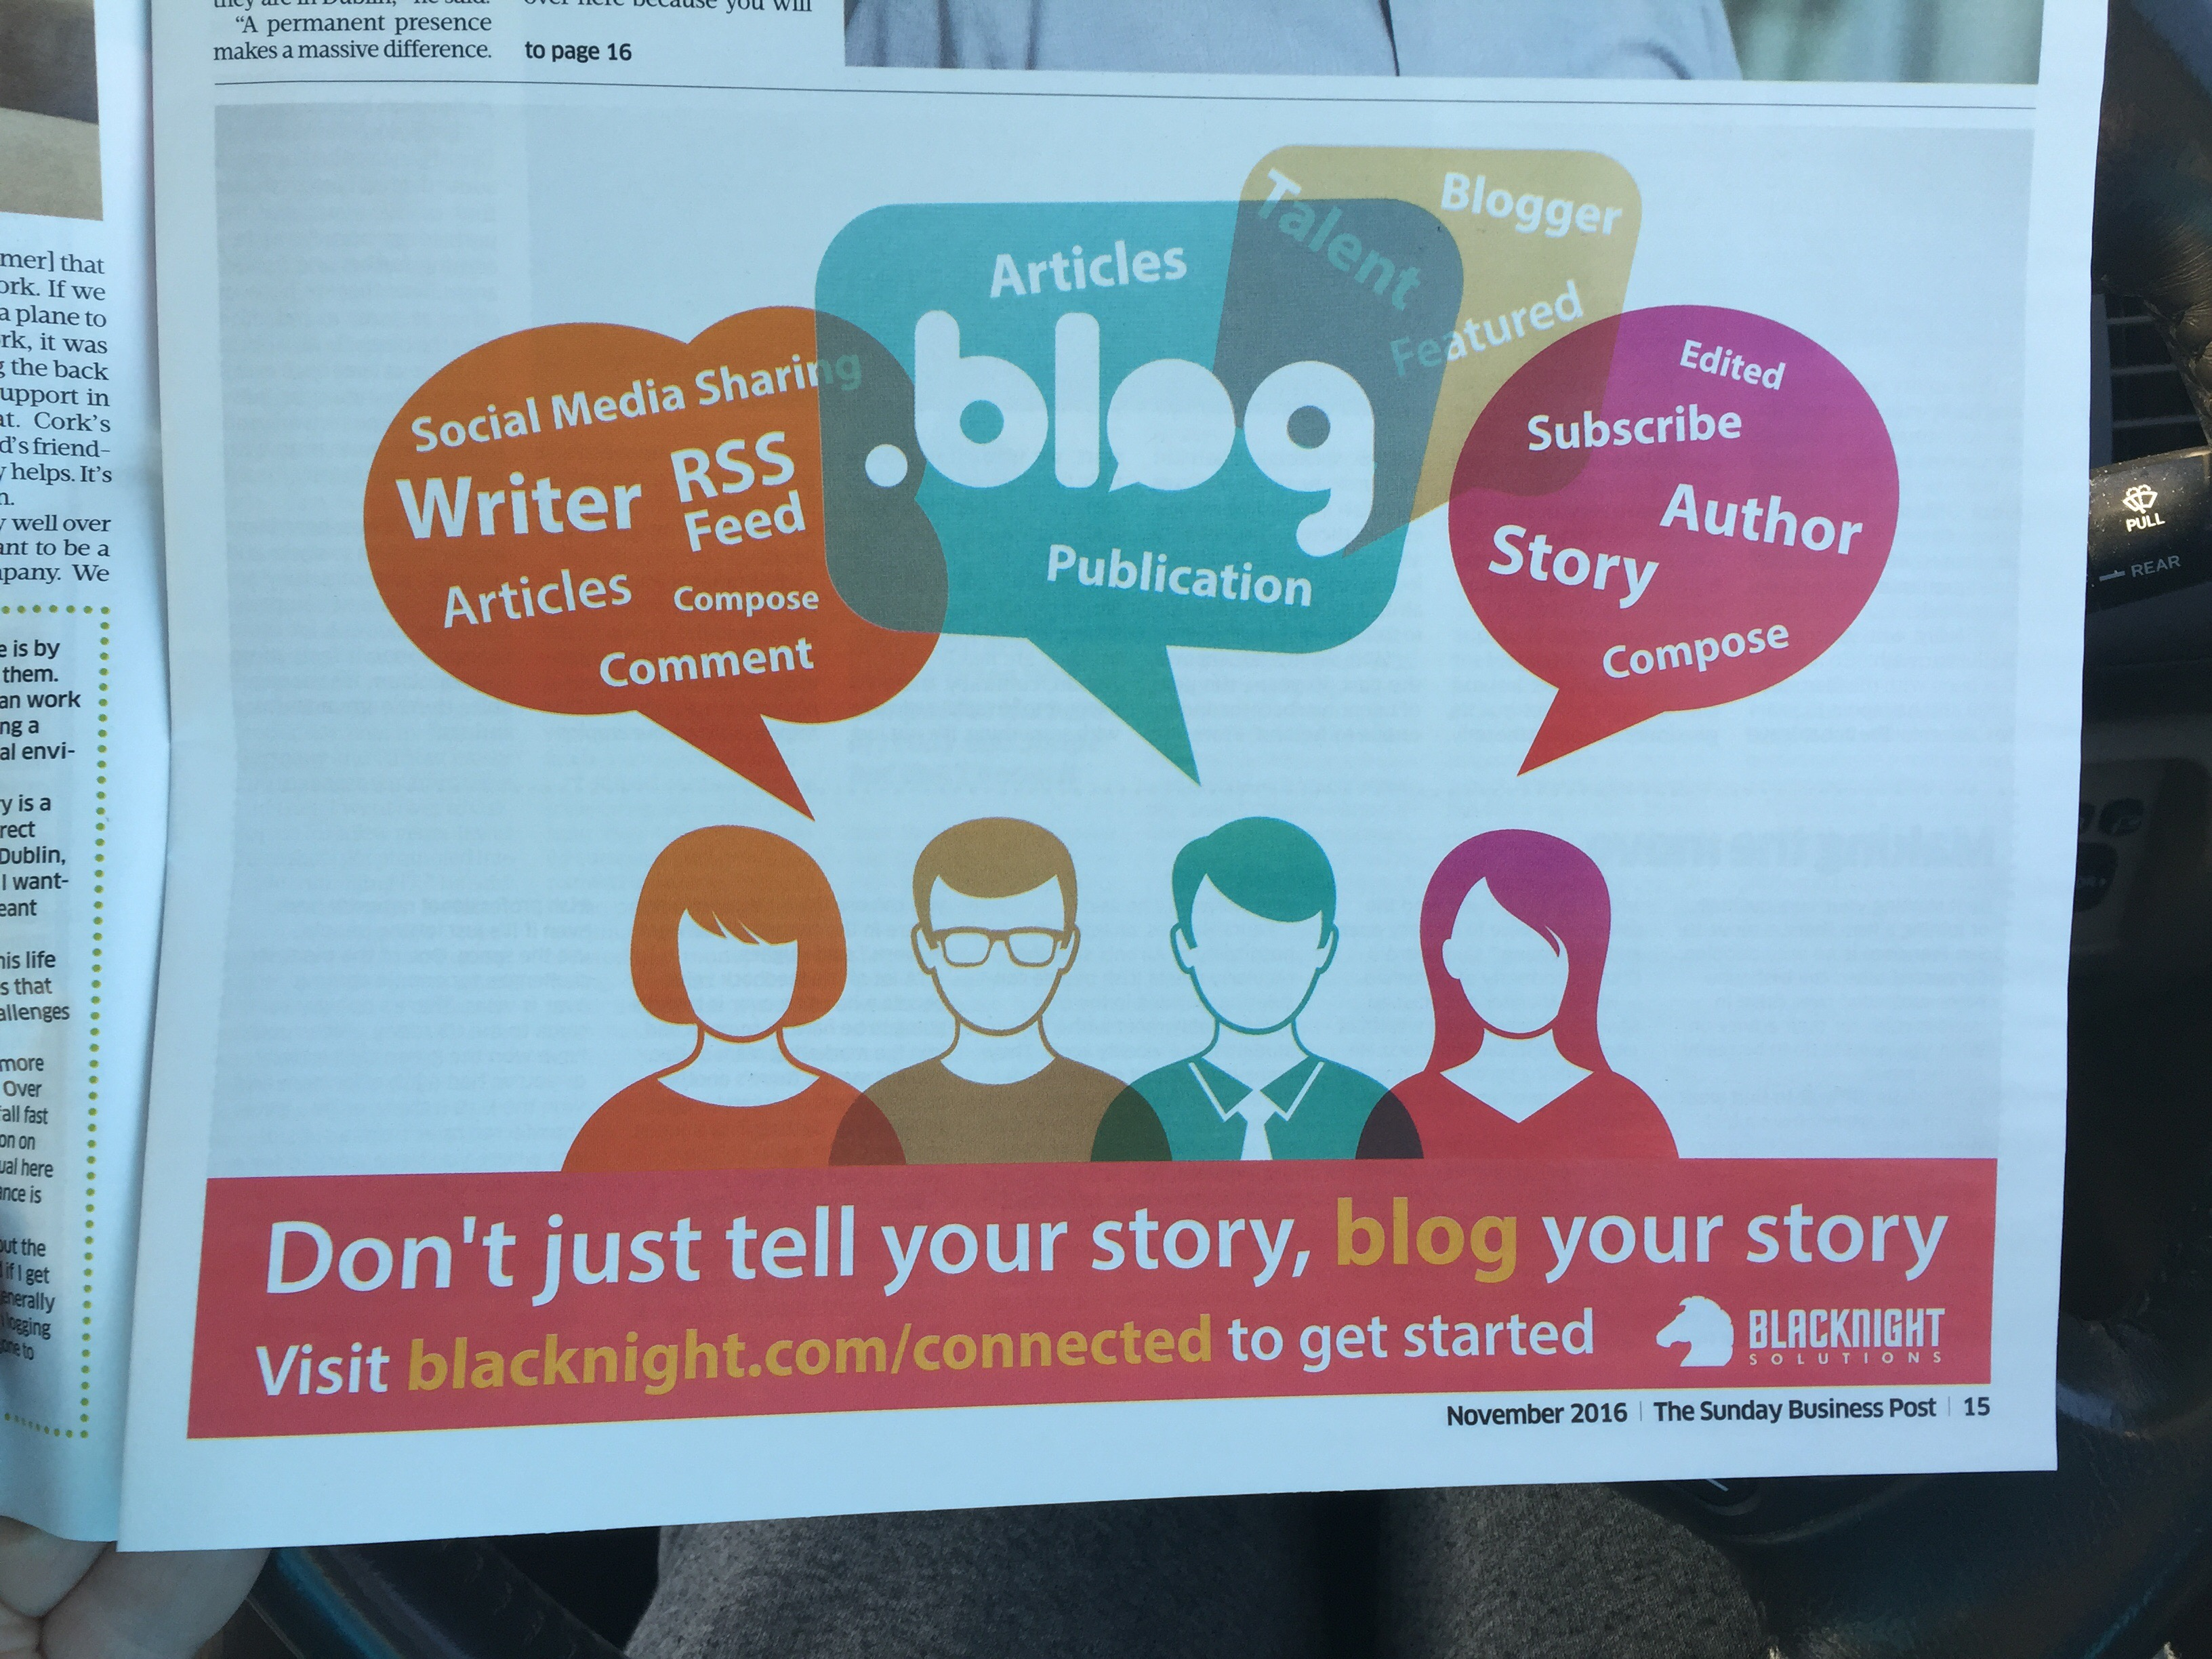 Blacknight Solutions – don't just tell your story, blog your story